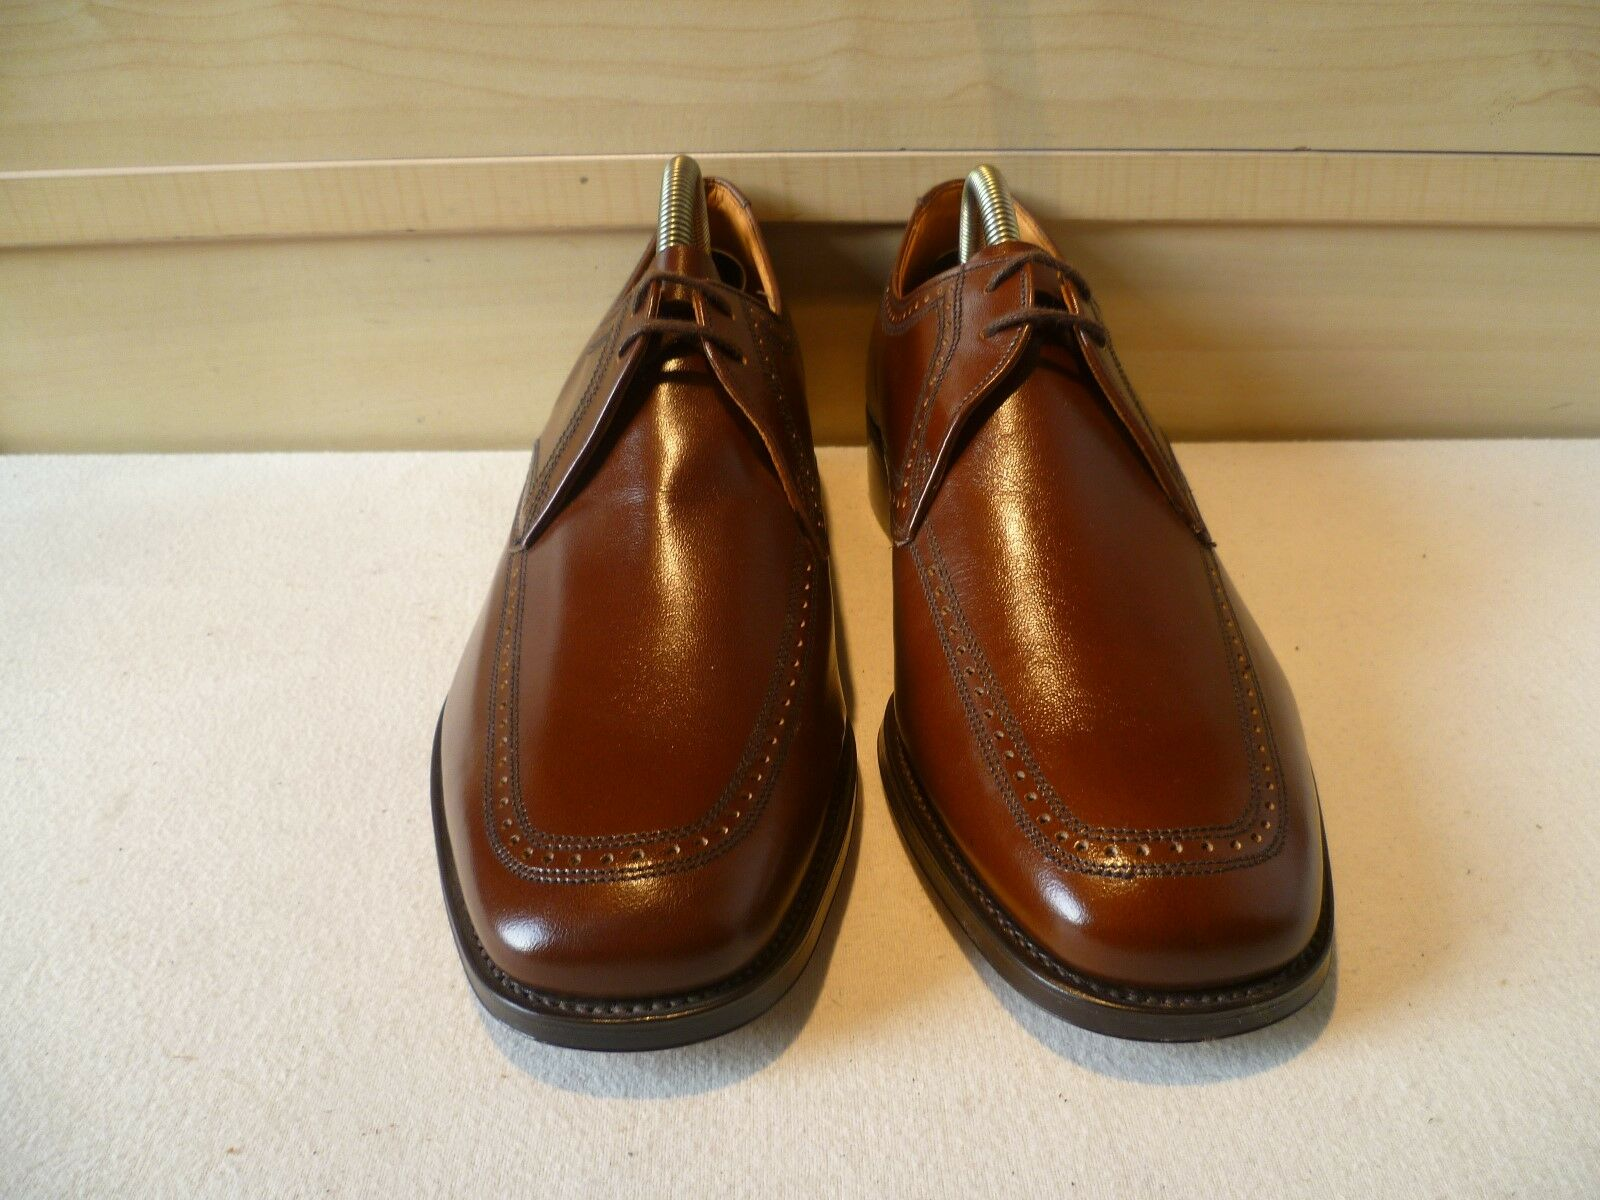 New David Scott vtg full leather derby UK 7 lace 41 English Goodyear welt lace 7 up fefd03